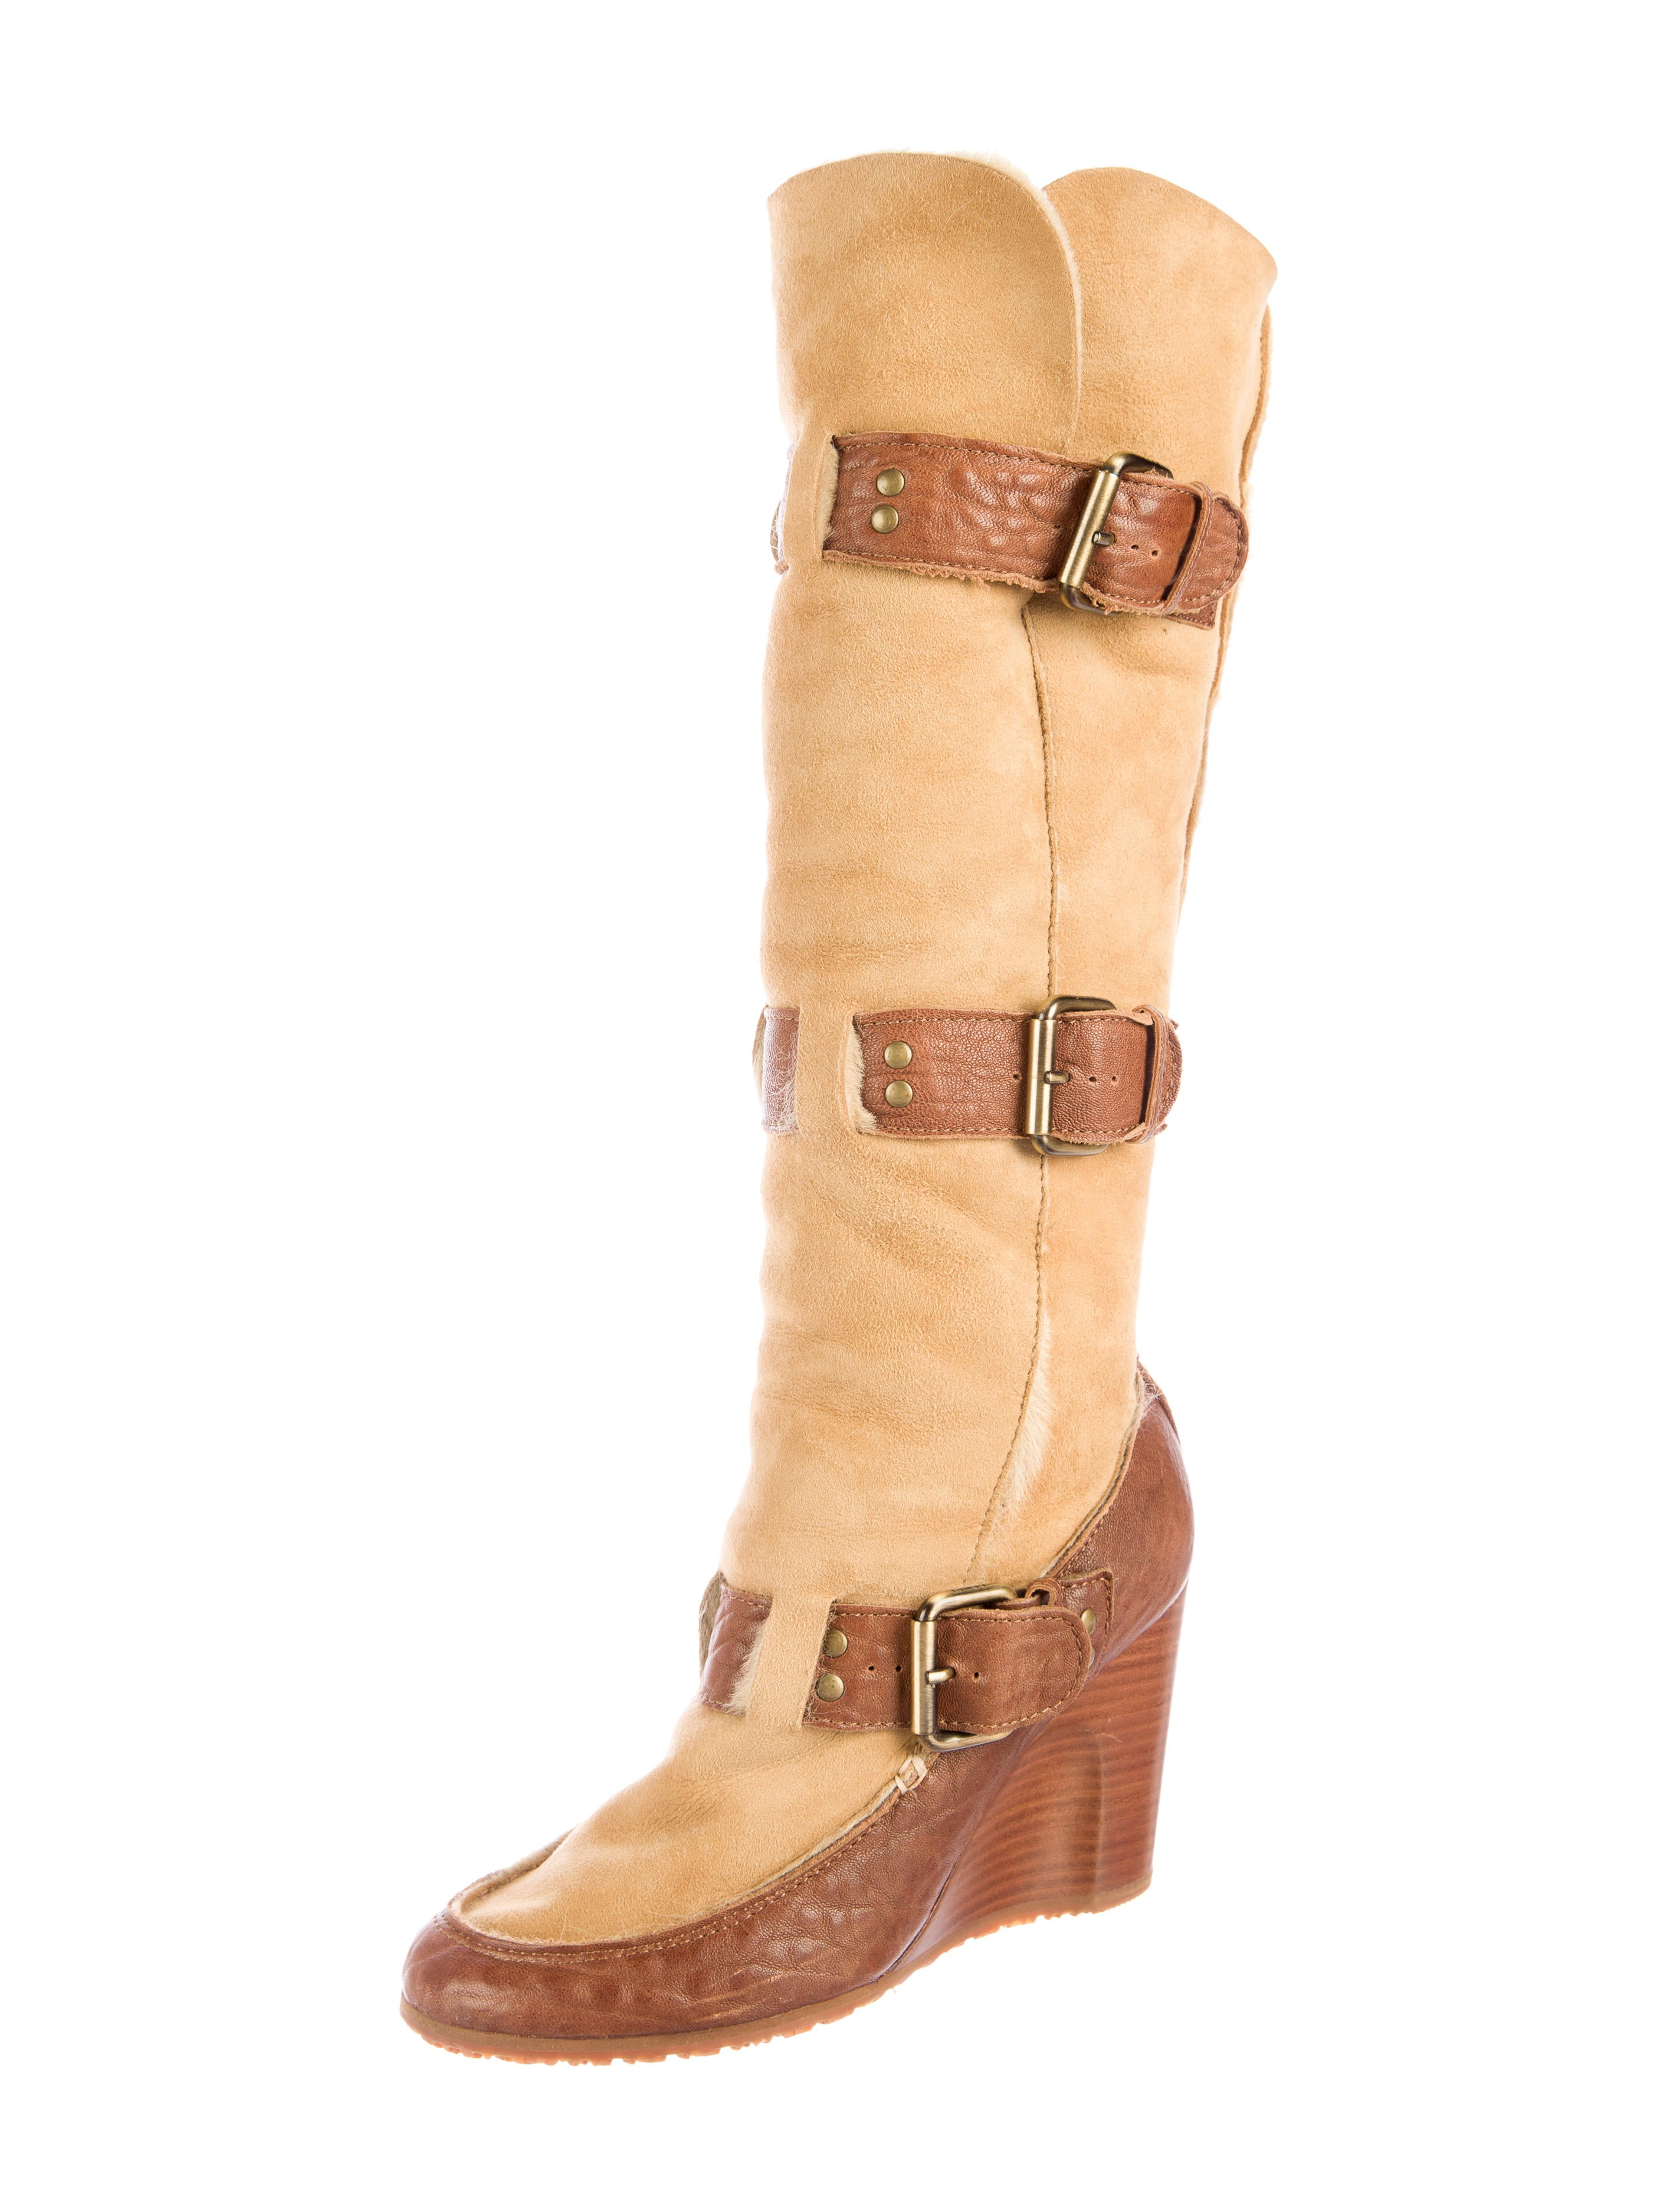 fendi shearling wedge boots shoes fen47541 the realreal